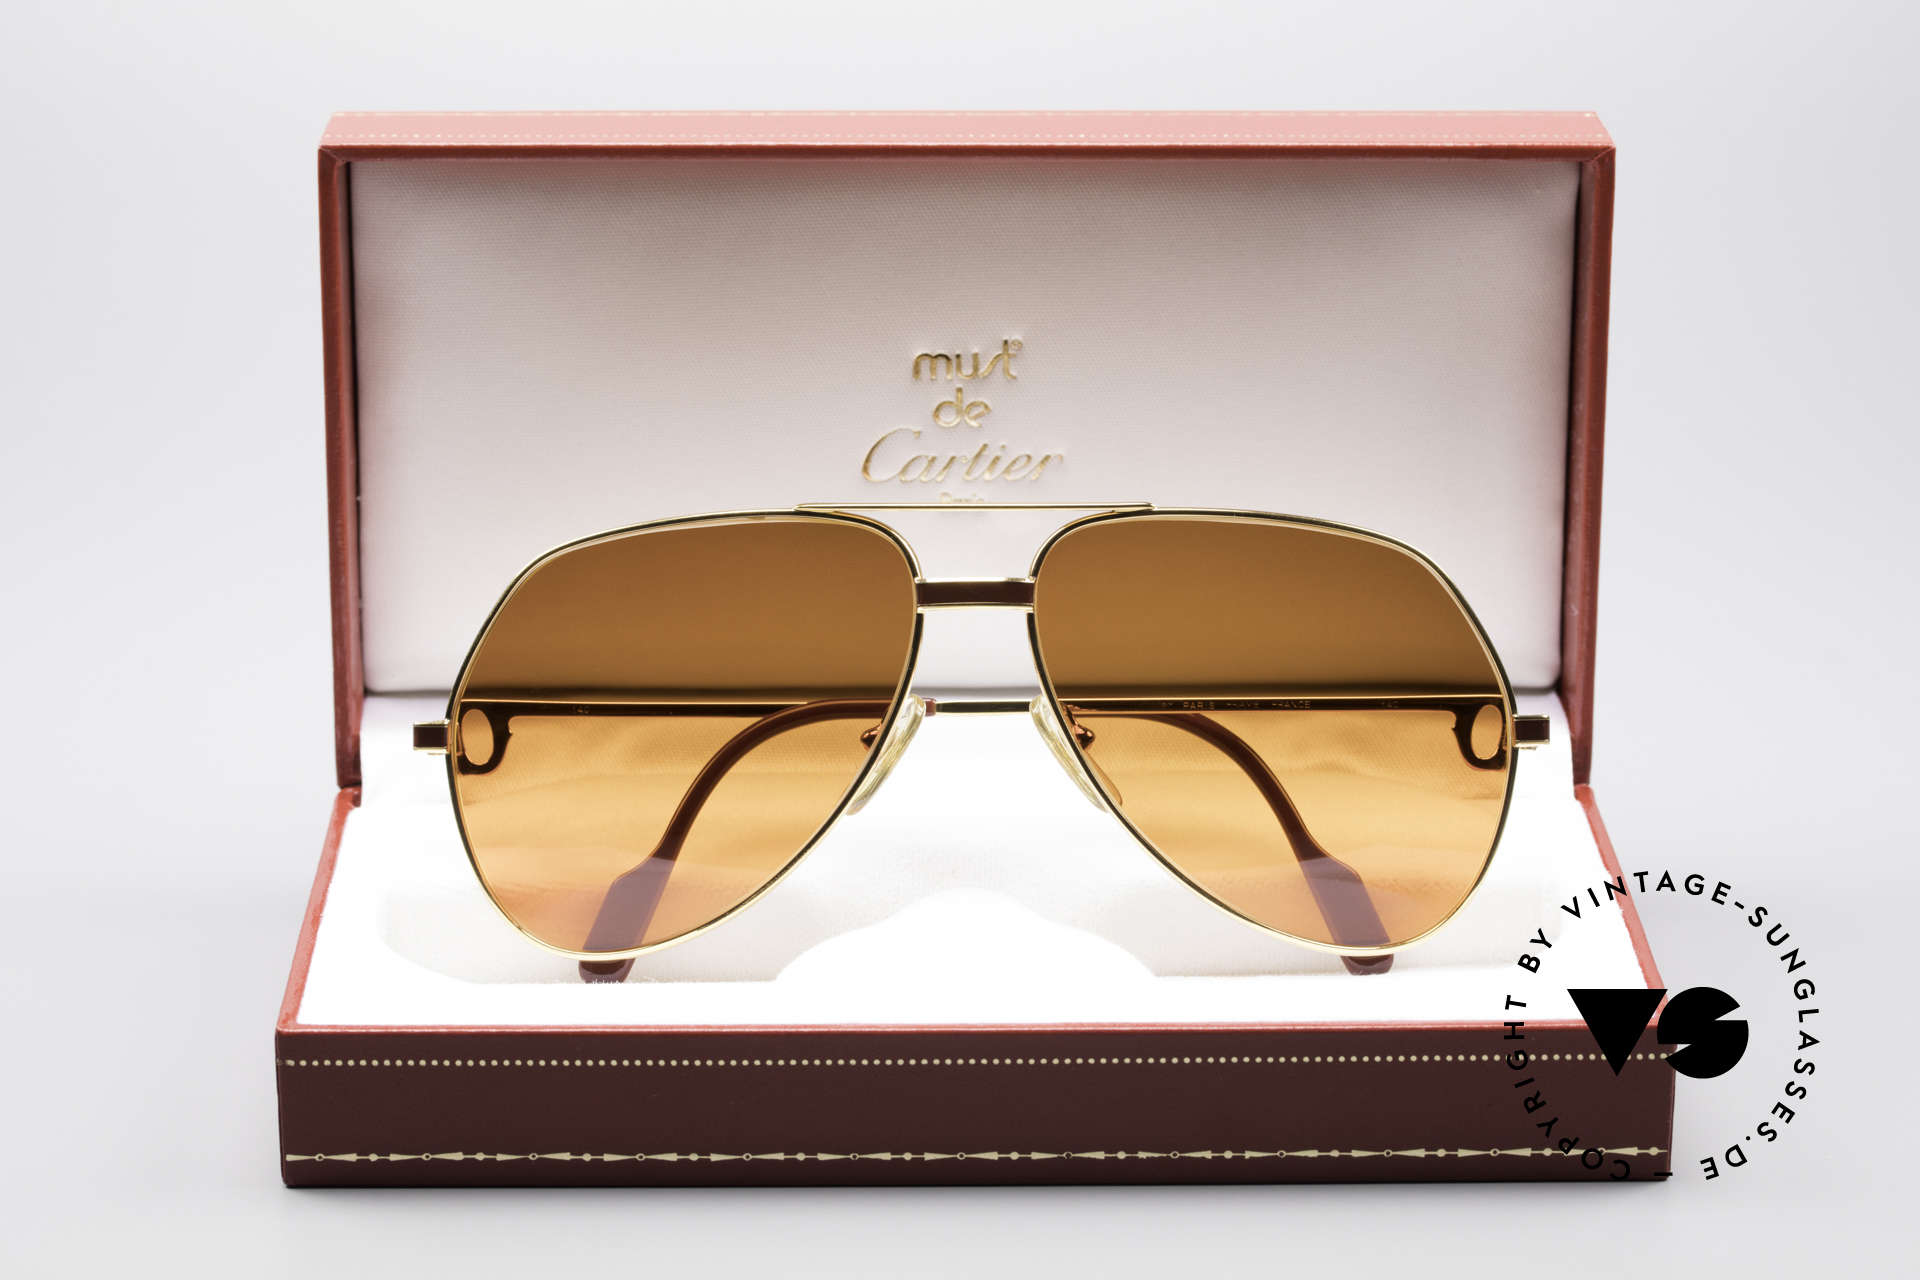 Cartier Vendome Laque - L Luxury 80's Aviator Sunglasses, the sun lenses are tinted like a sunset (auburn gradient), Made for Men and Women